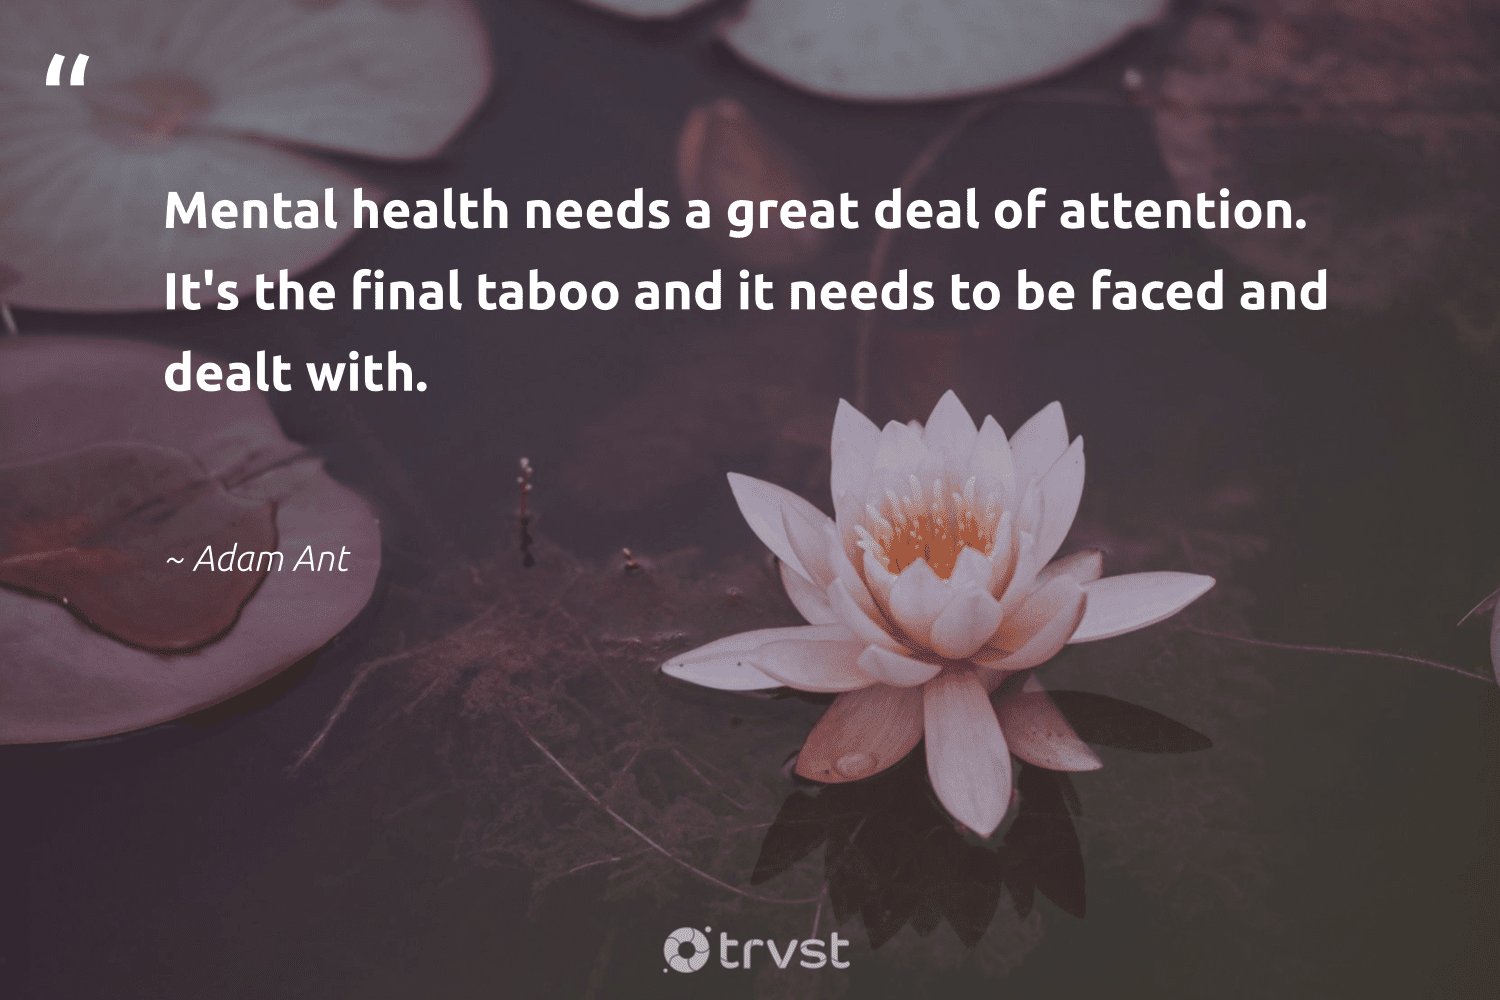 """Mental health needs a great deal of attention. It's the final taboo and it needs to be faced and dealt with.""  - Adam Ant #trvst #quotes #mentalhealth #health #depression #changemakers #nevergiveup #beinspired #stampoutthestigma #togetherwecan #mindset #bethechange"